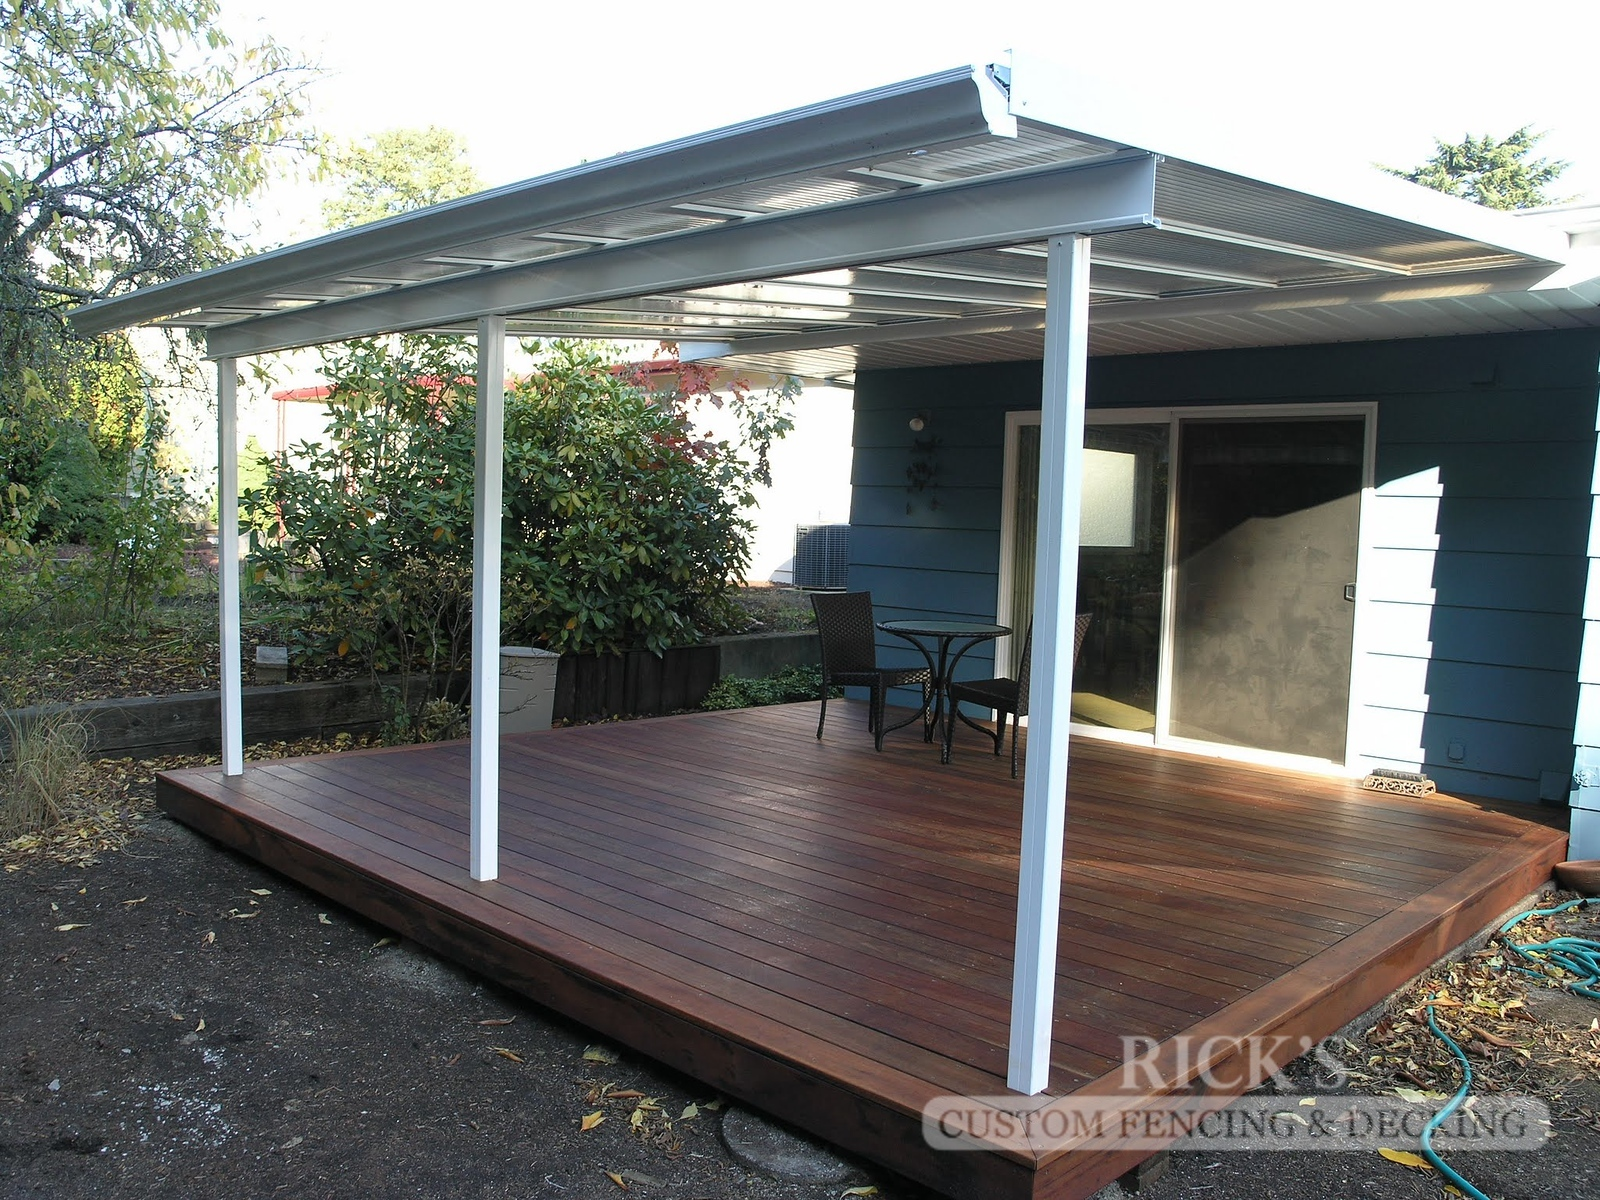 5063 - Acrylite Patio Cover